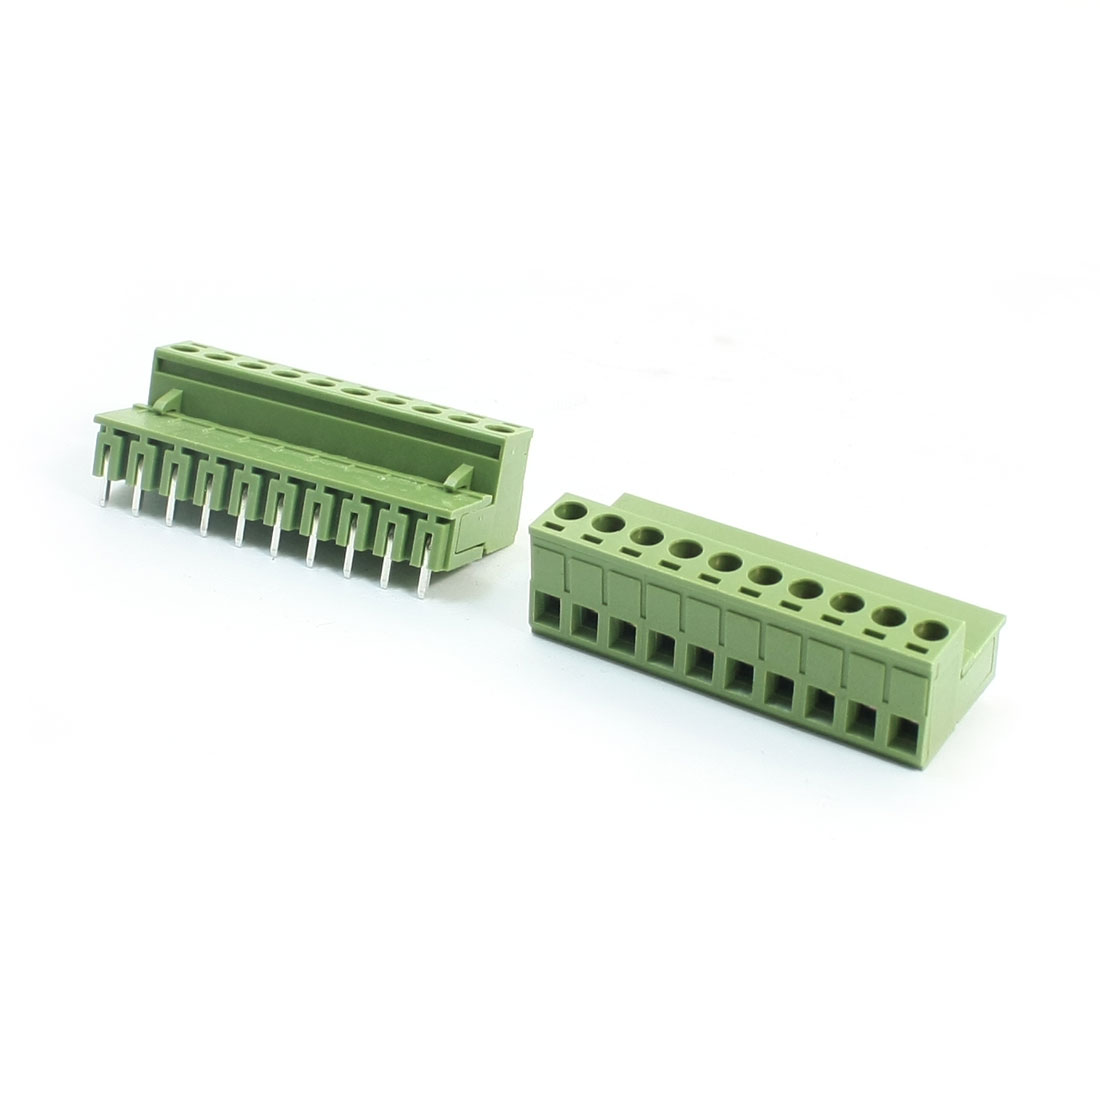 2Pcs AC300V 10A 5.08mm Pitch 10-Pin 10-Pole Right Angle Pluggable PCB Mount Screw Terminal Barrier Block Connector for 12-24AWG Wire